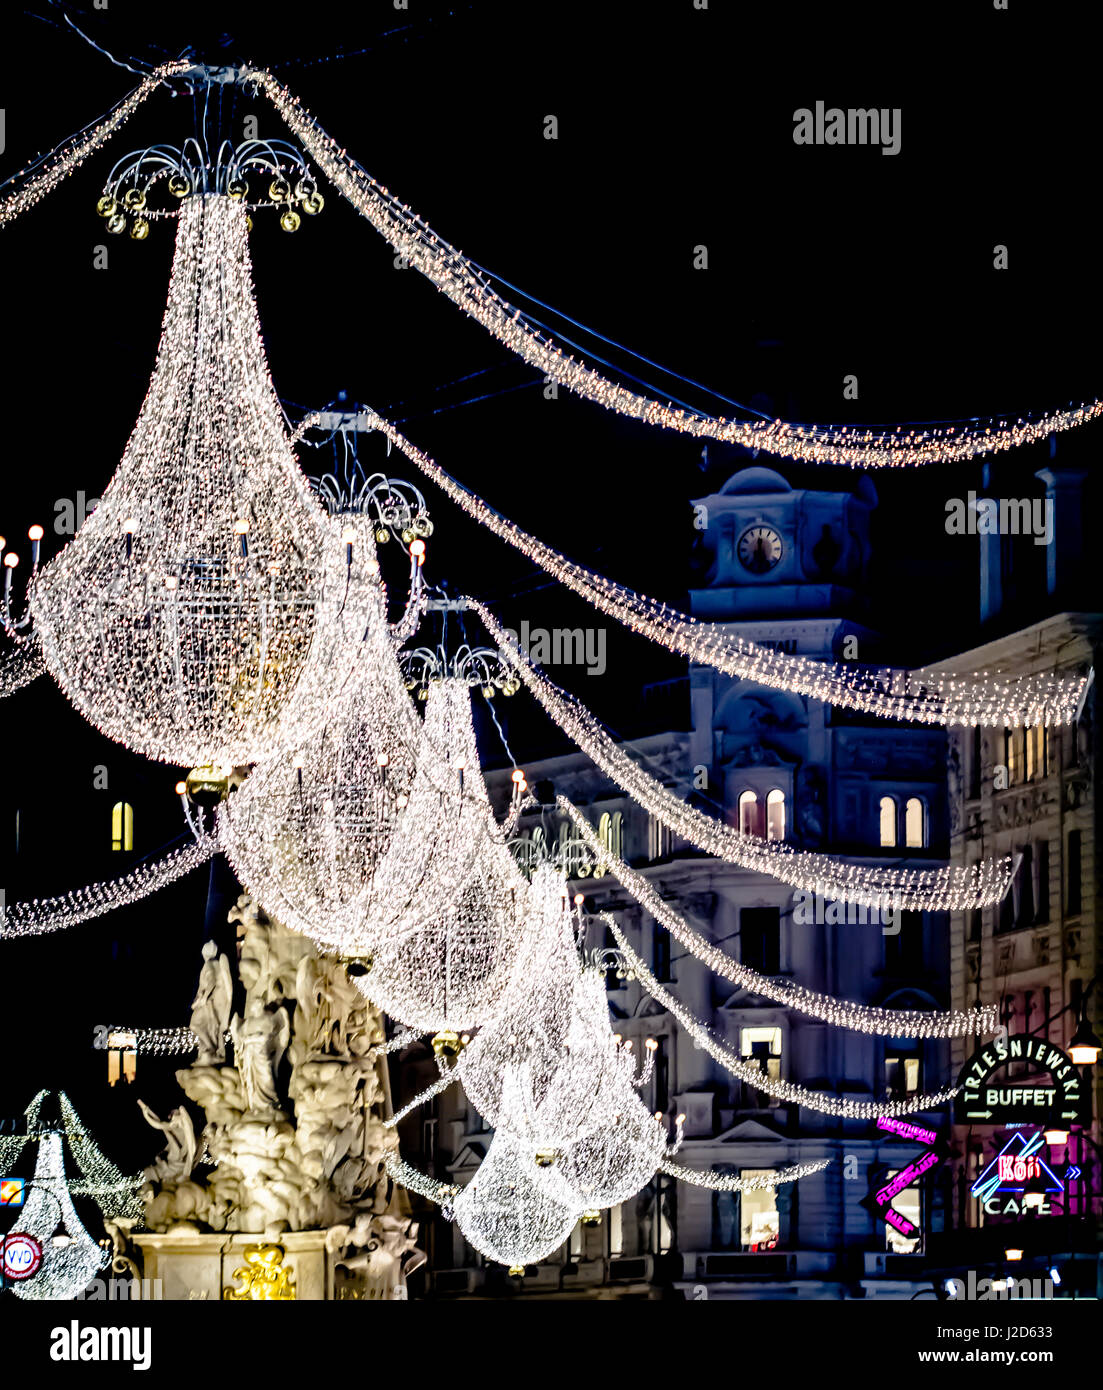 Graben, Vienna, Austria. Lit Chandelier Christmas Decorations On Graben  Shopping Street, Vienna